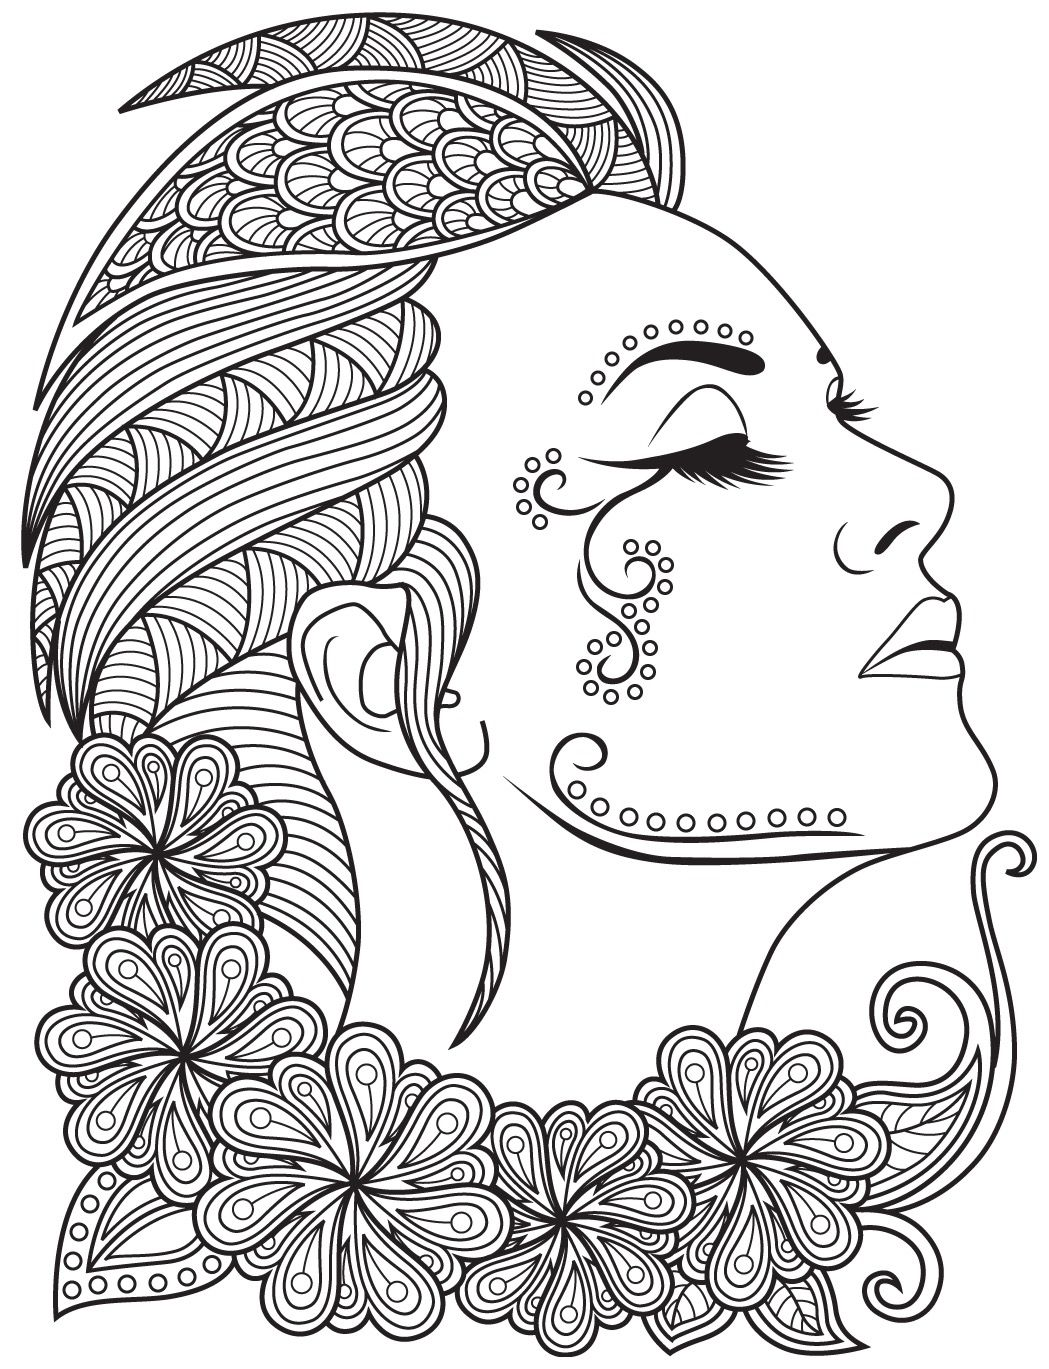 Women Faces To Color Colorish Free Coloring App For Adults By